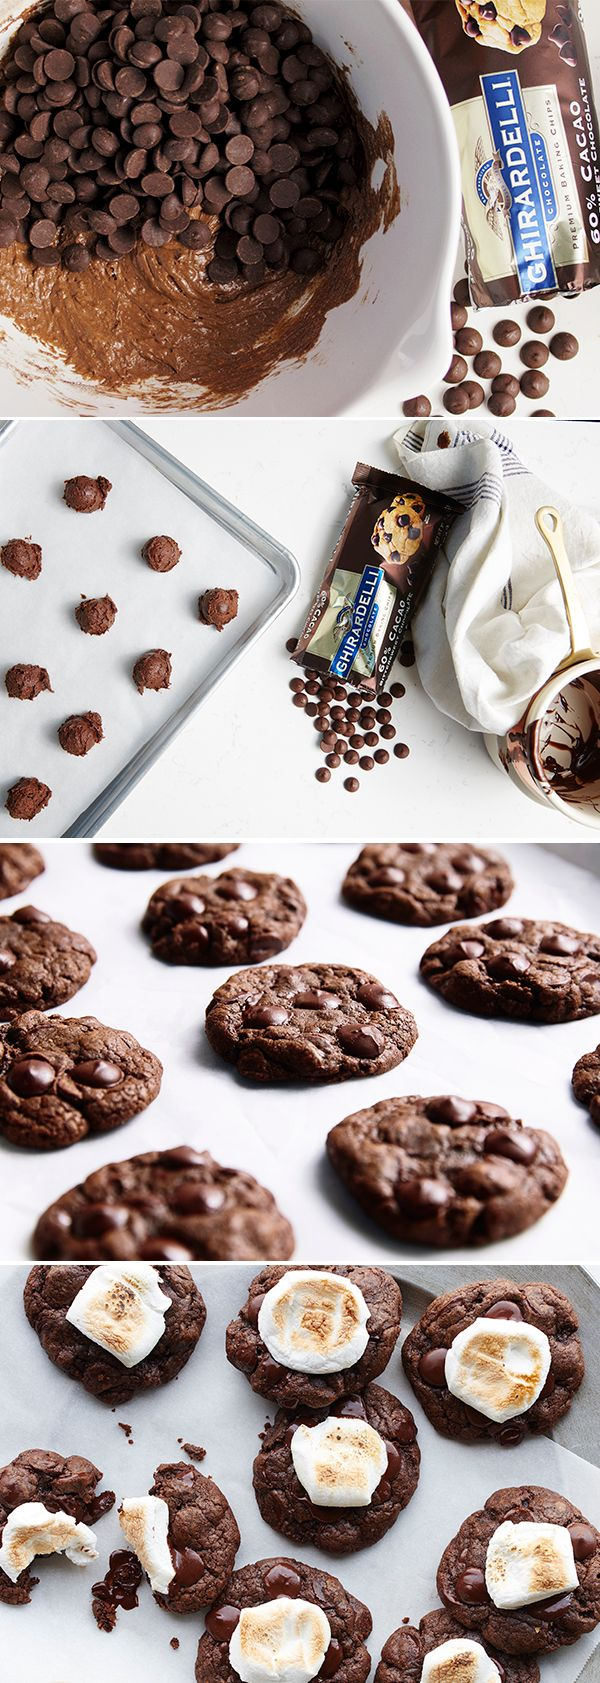 Everyone's favorite hot drink for cold days, now a cookie! Our Ghirardelli 60% Cacao Baking Chips are the #SweetestSecret of holiday desserts that dazzle & delight.